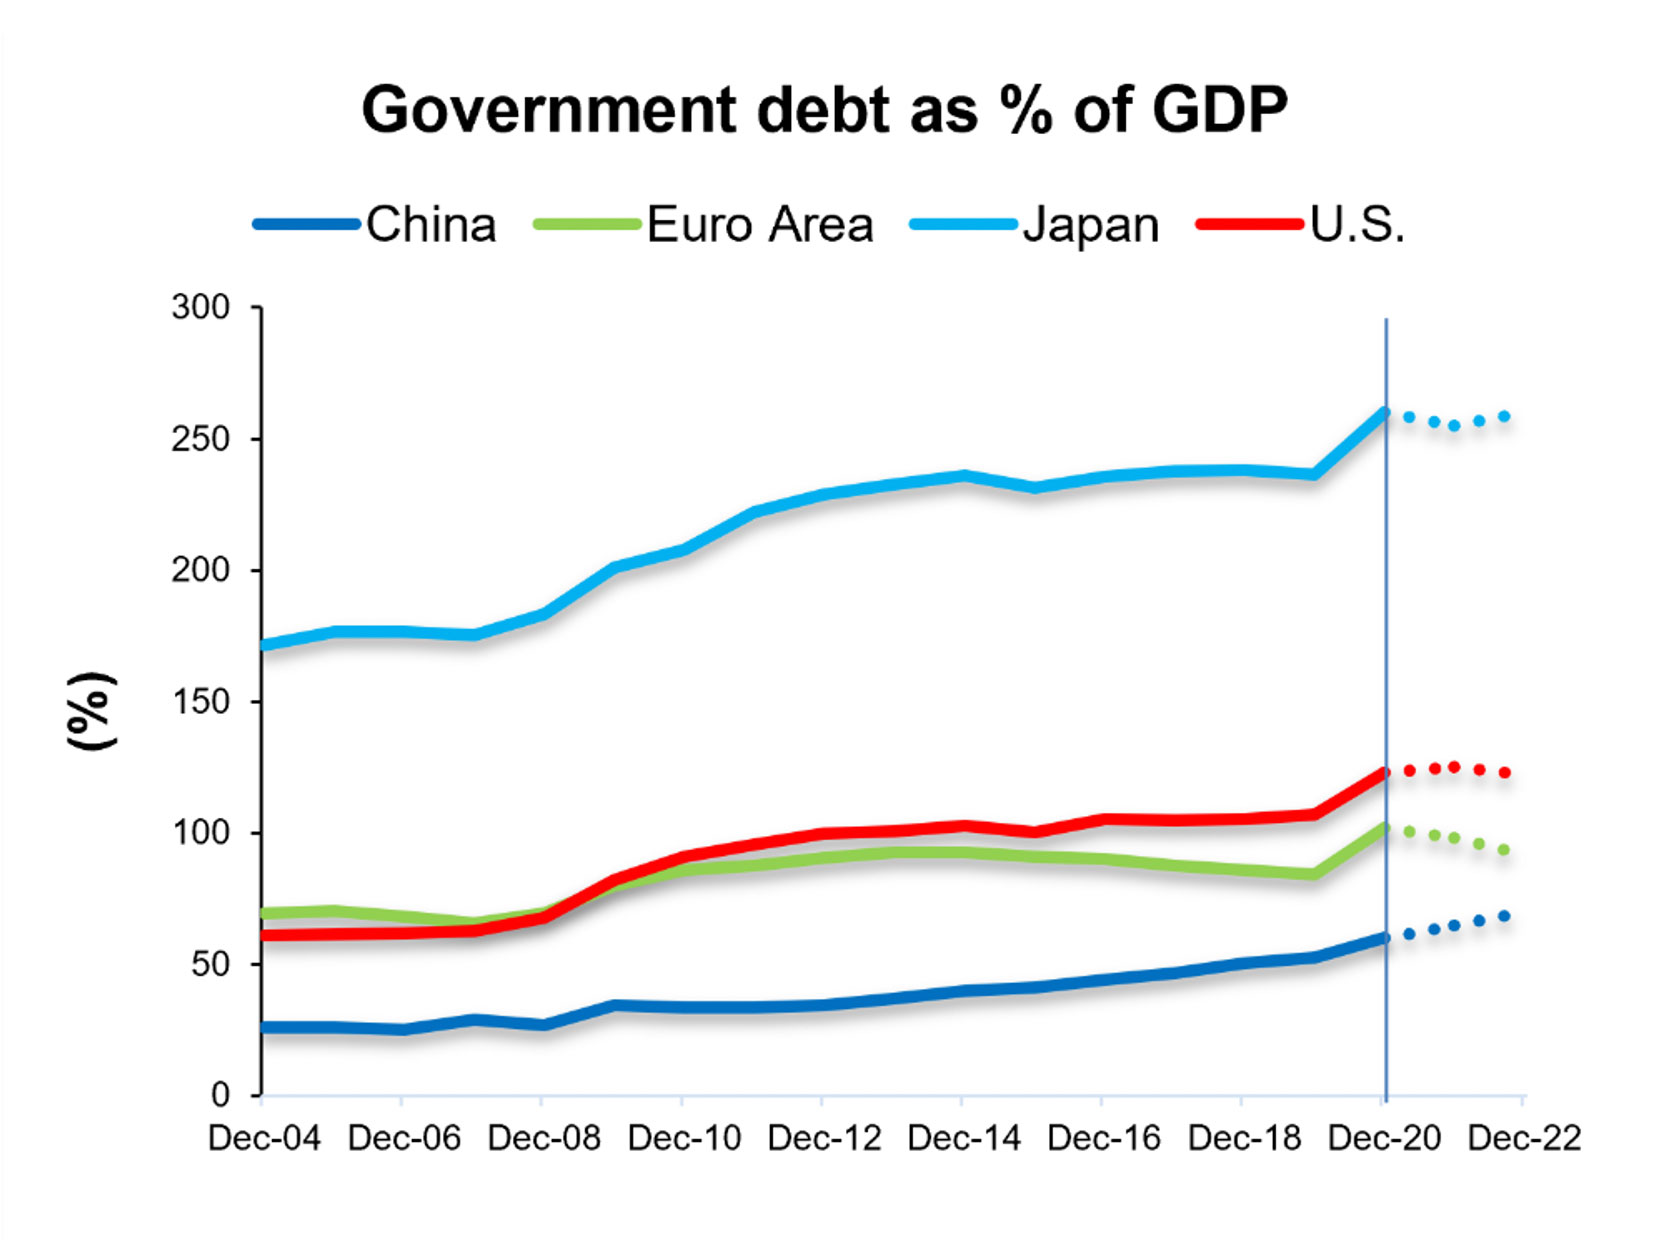 Government debt as percentage of GDP